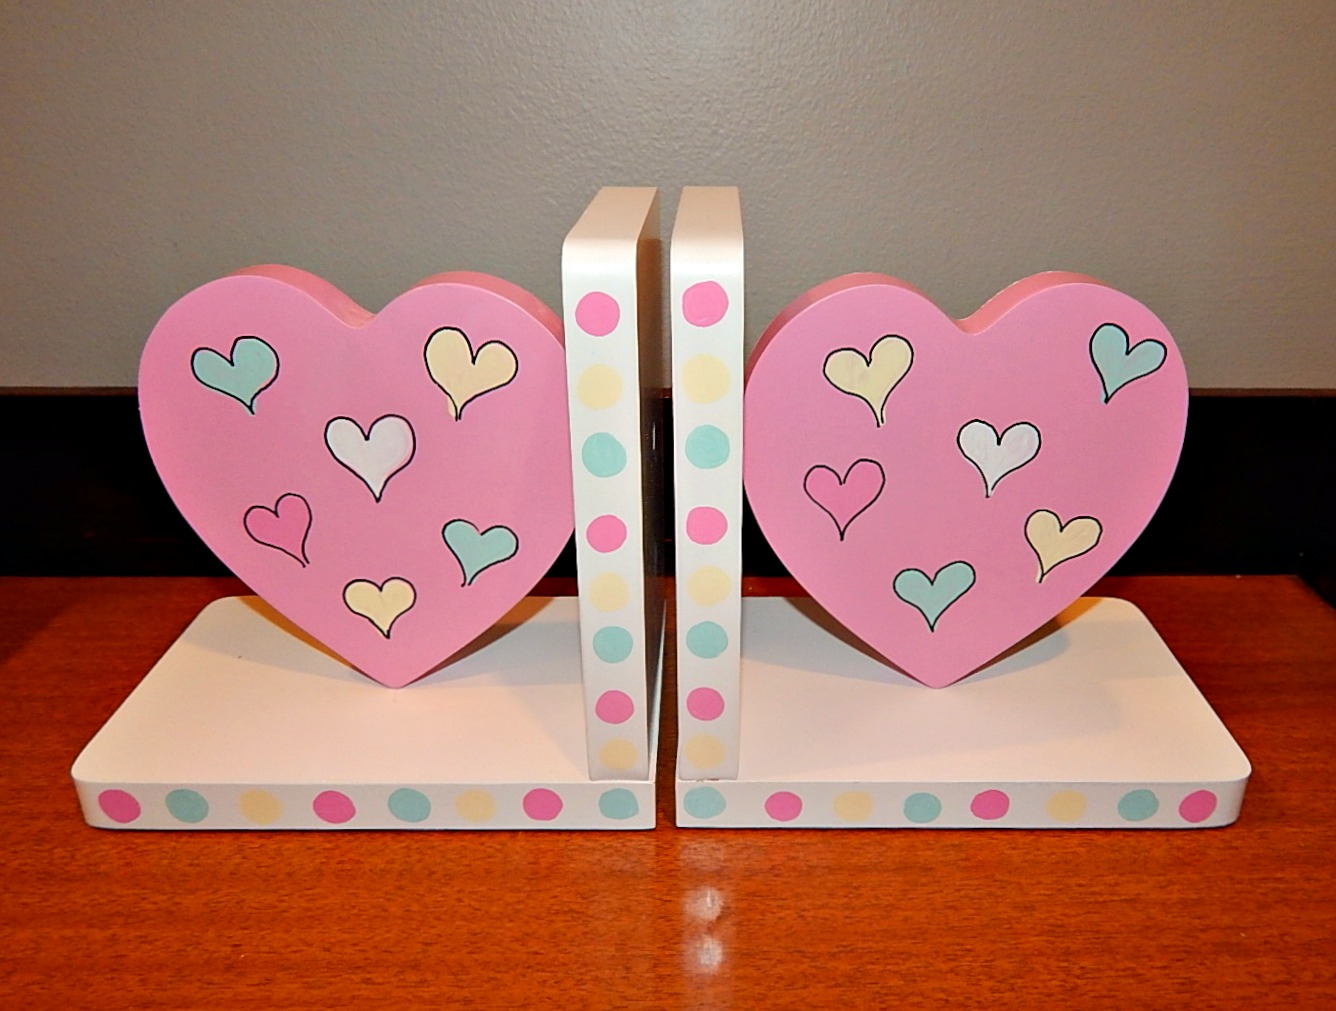 Pink Heart Shaped Bookends - Artworks By Amy